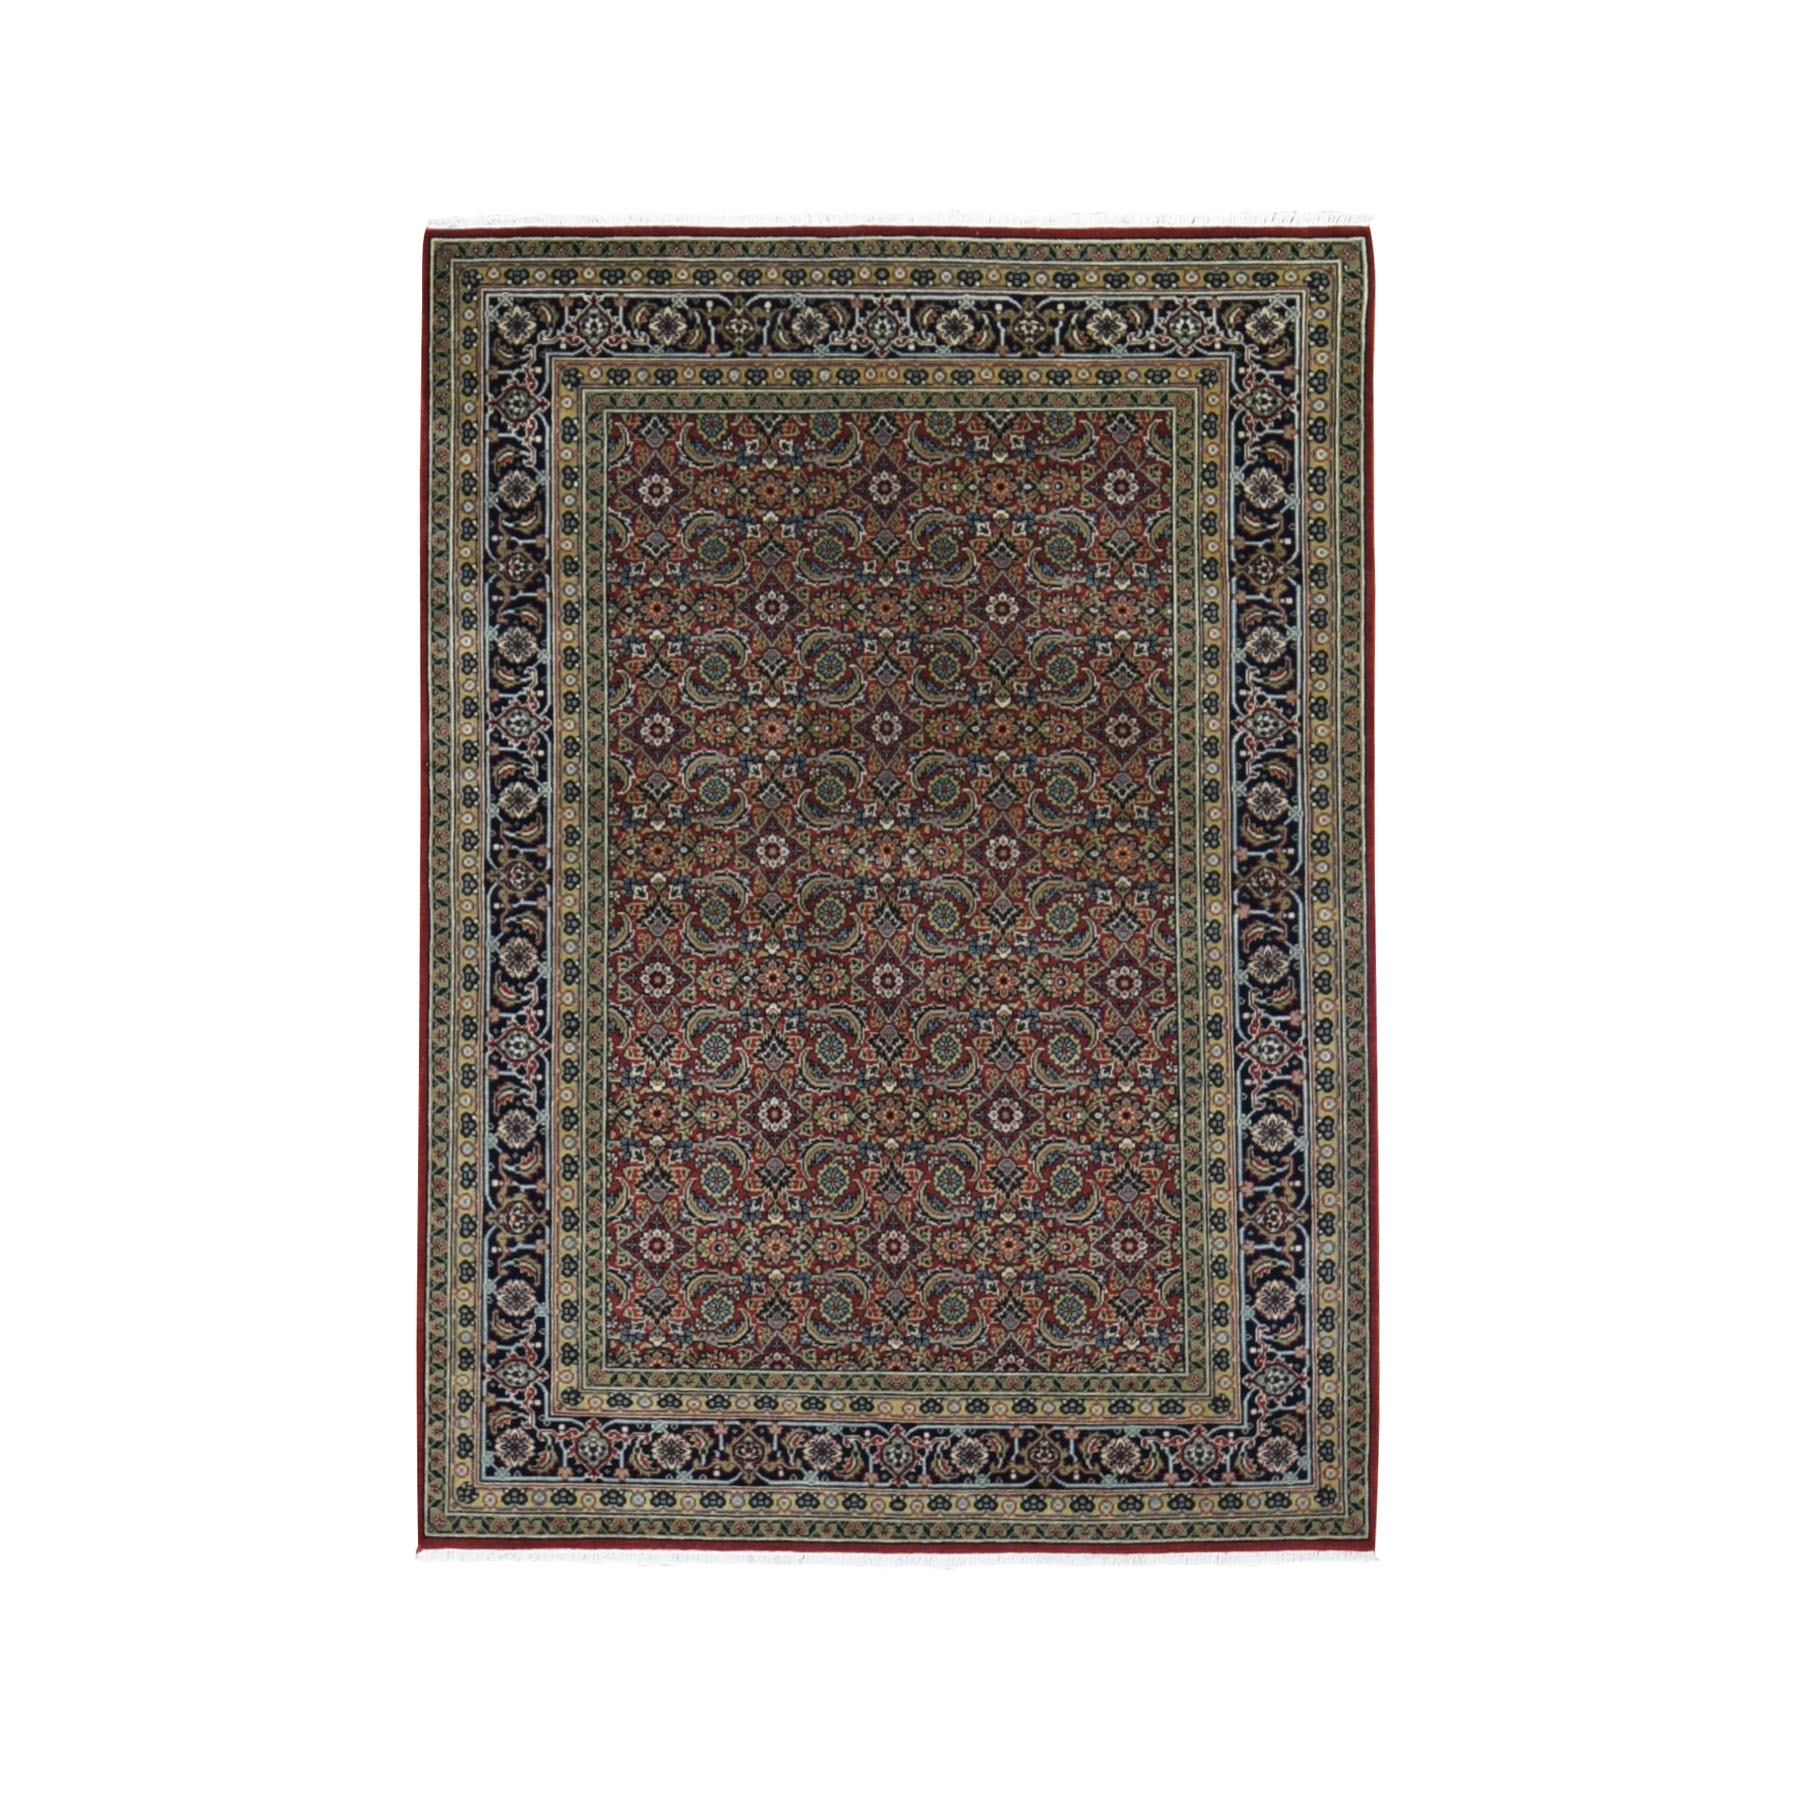 Pirniakan Collection Hand Knotted Red Rug No: 0198556